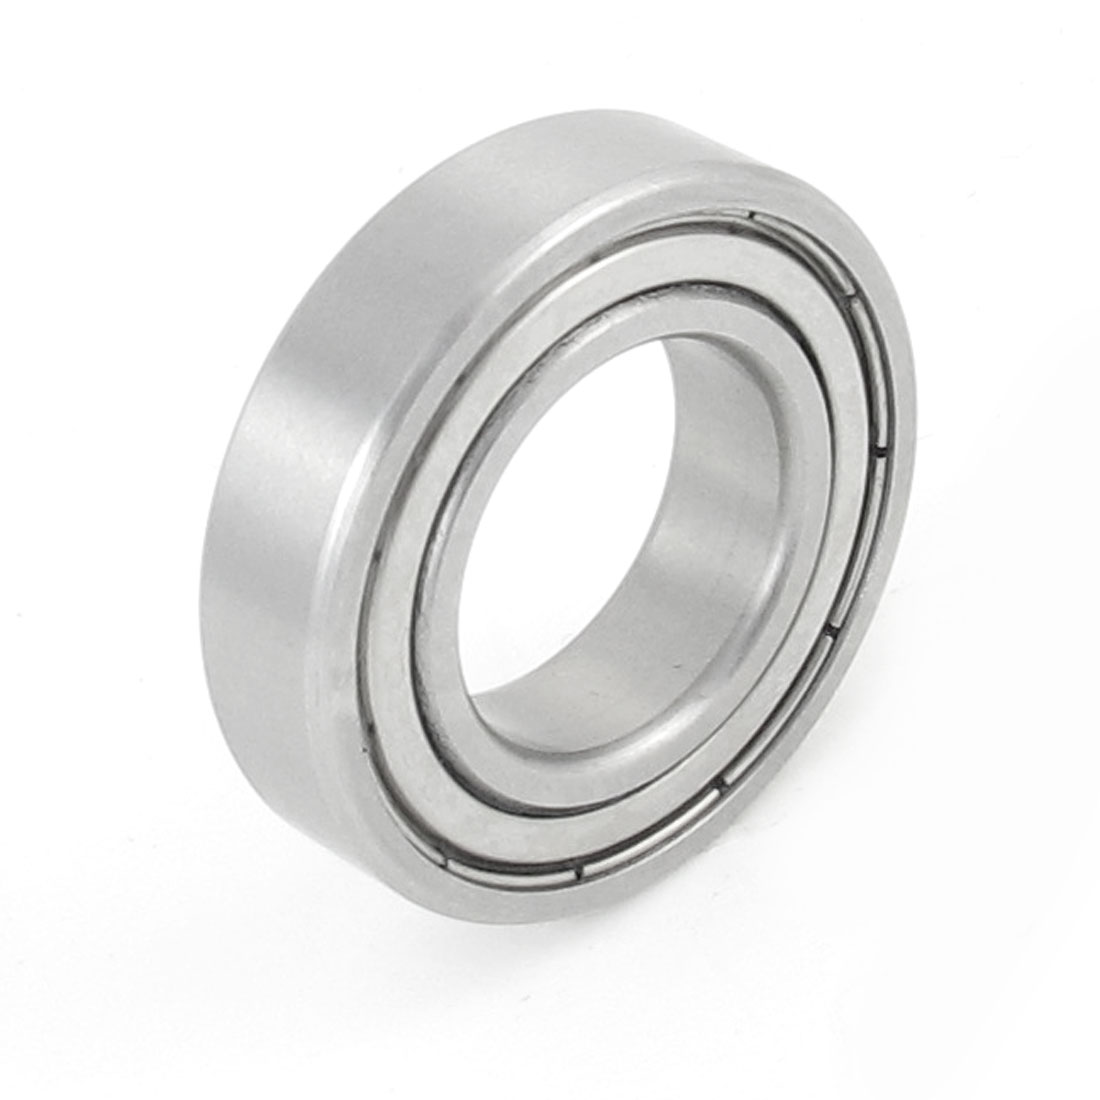 Siver Tone Stainless Steel 37mm OD 20mm ID Deep Groove Ball Bearing